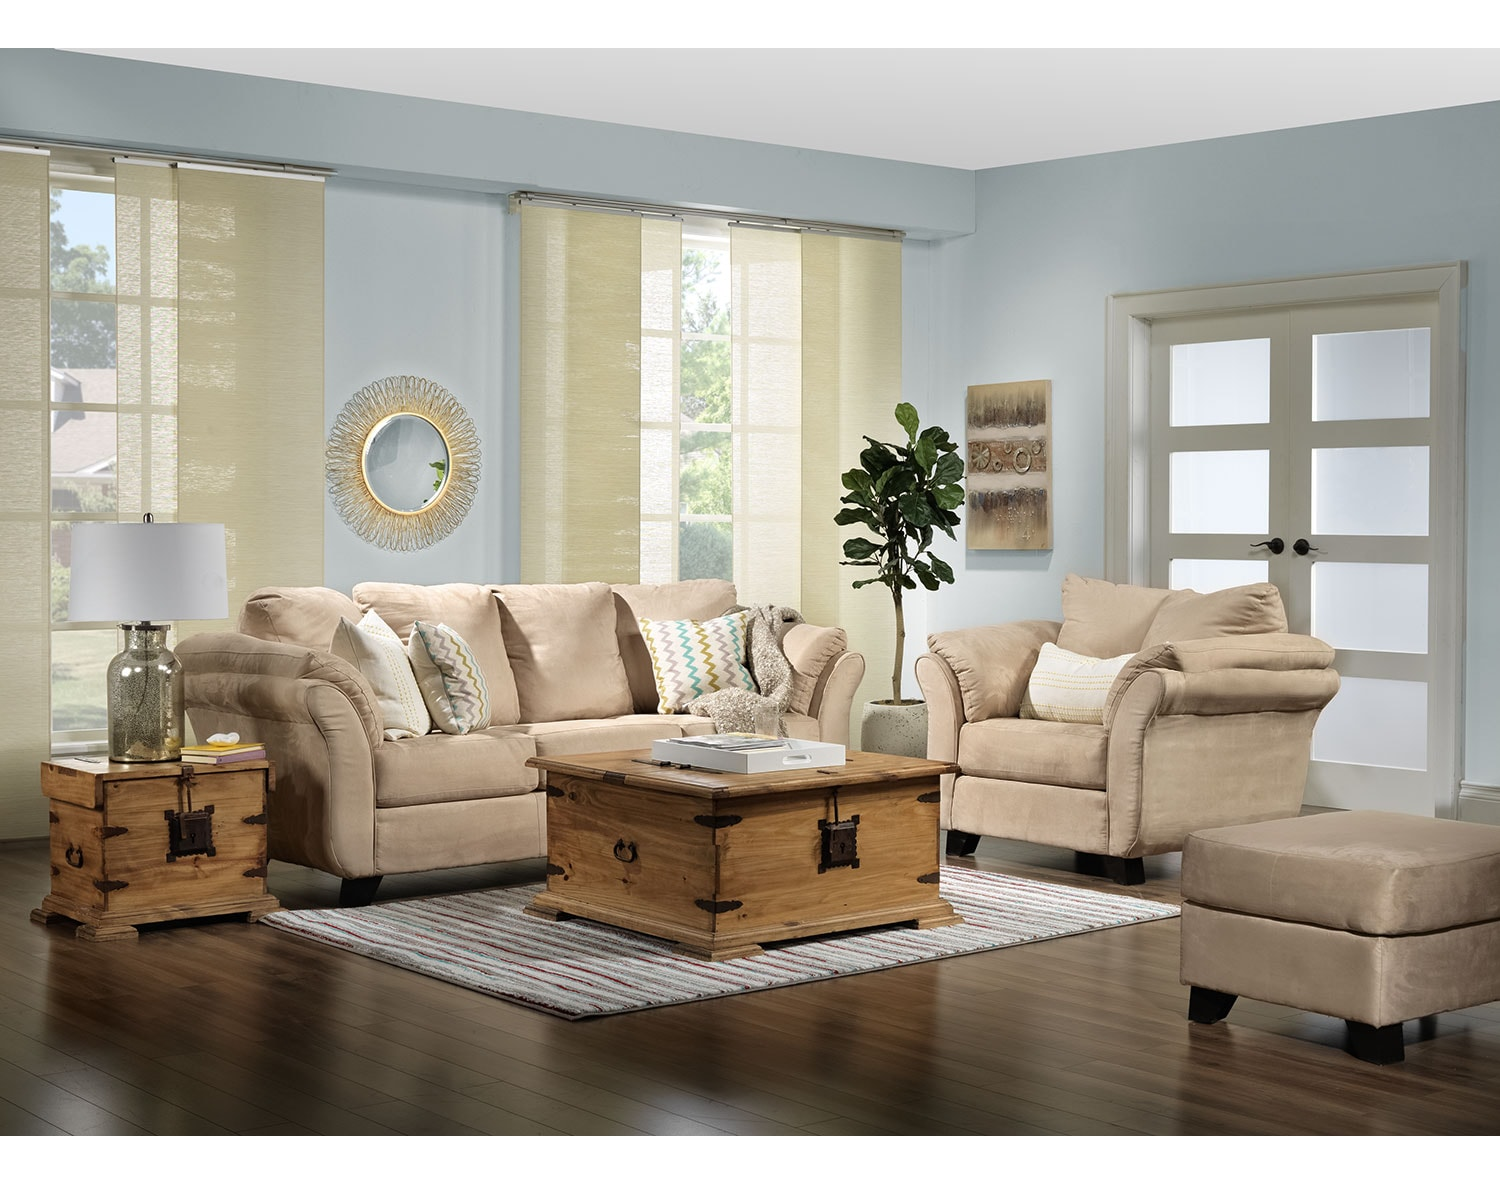 couch in living room collier sofa beige s 14893